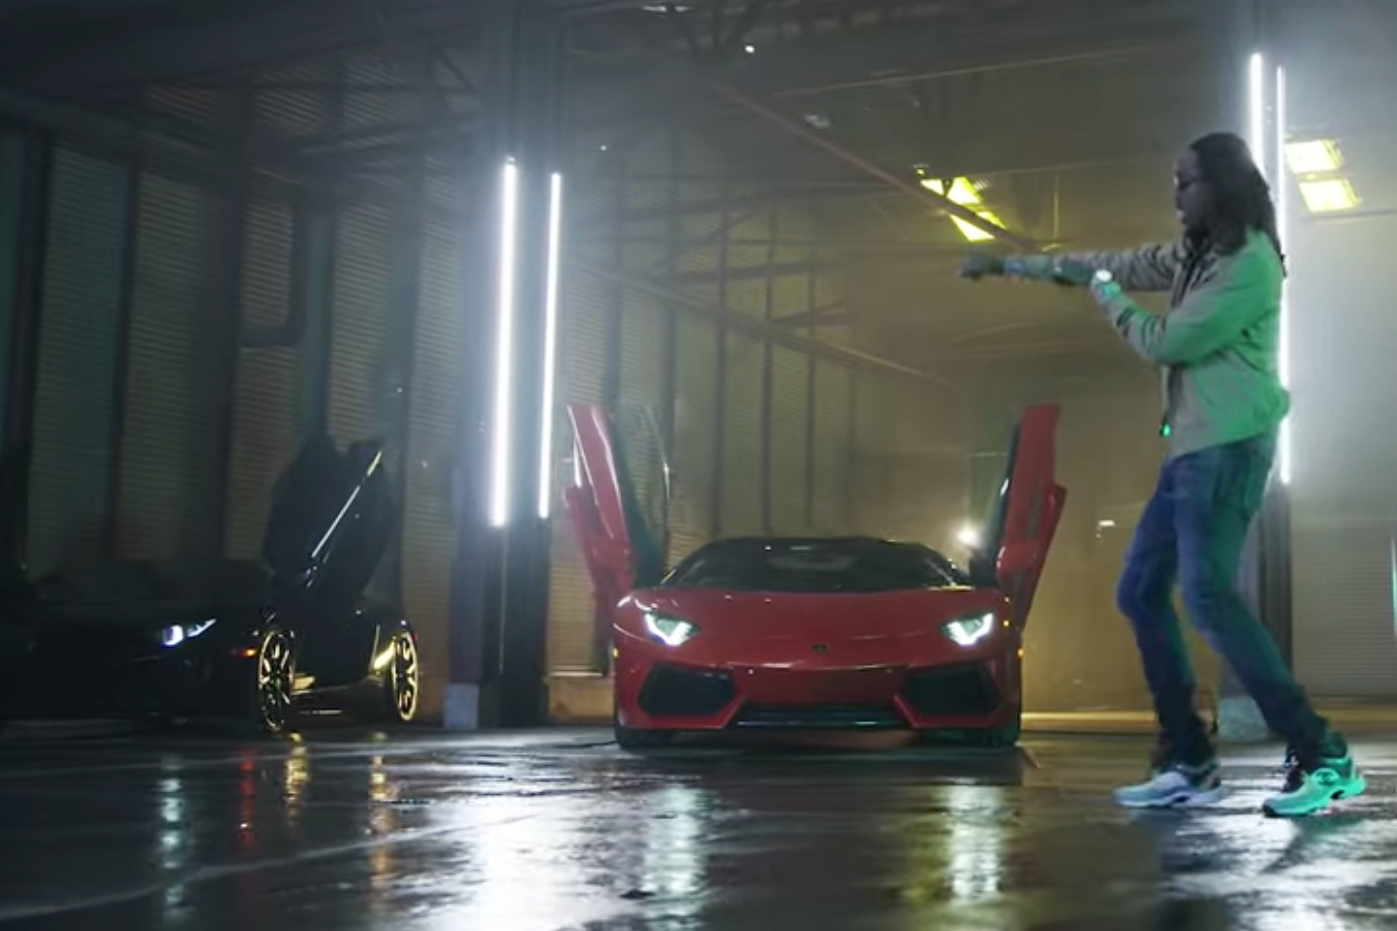 Quavo's Video for 'Lamb Talk' Features Many Lamborghinis, as the Prophecy Foretold